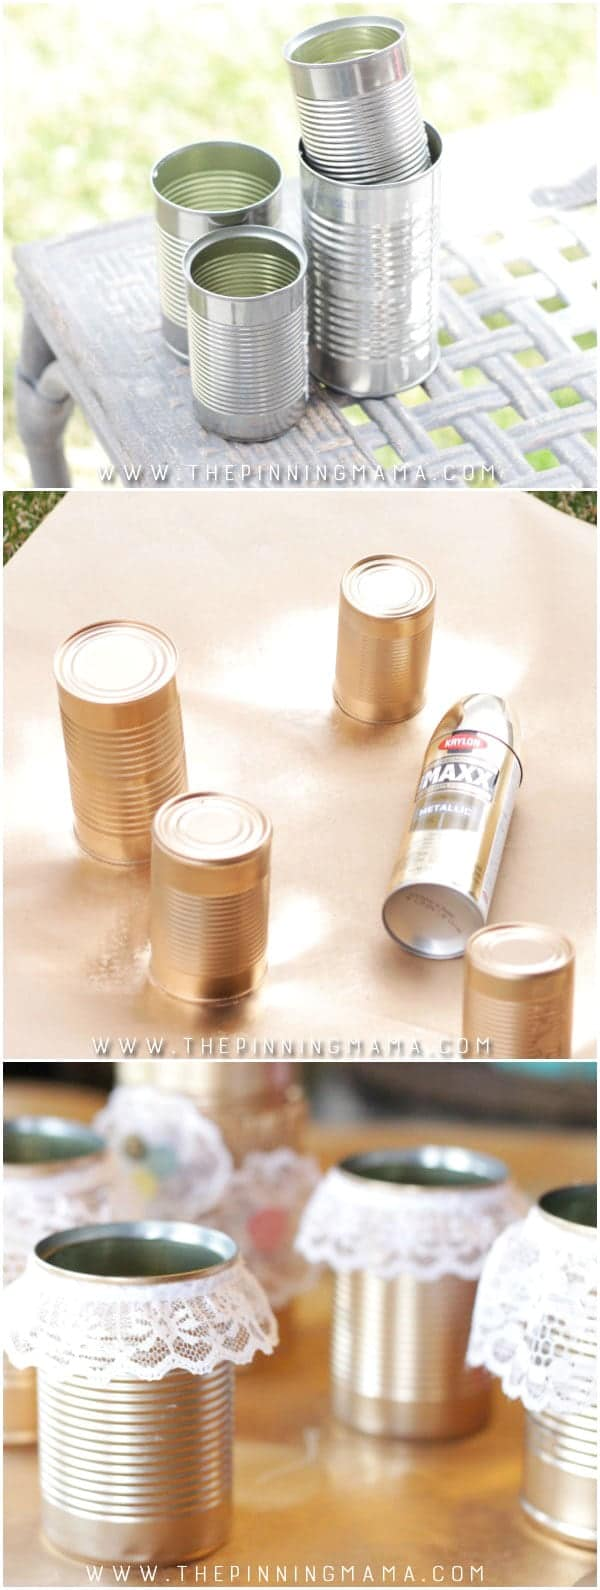 Spray Paint Tin Cans Gold And Glue Lace On Them For A Stunning Centerpiece